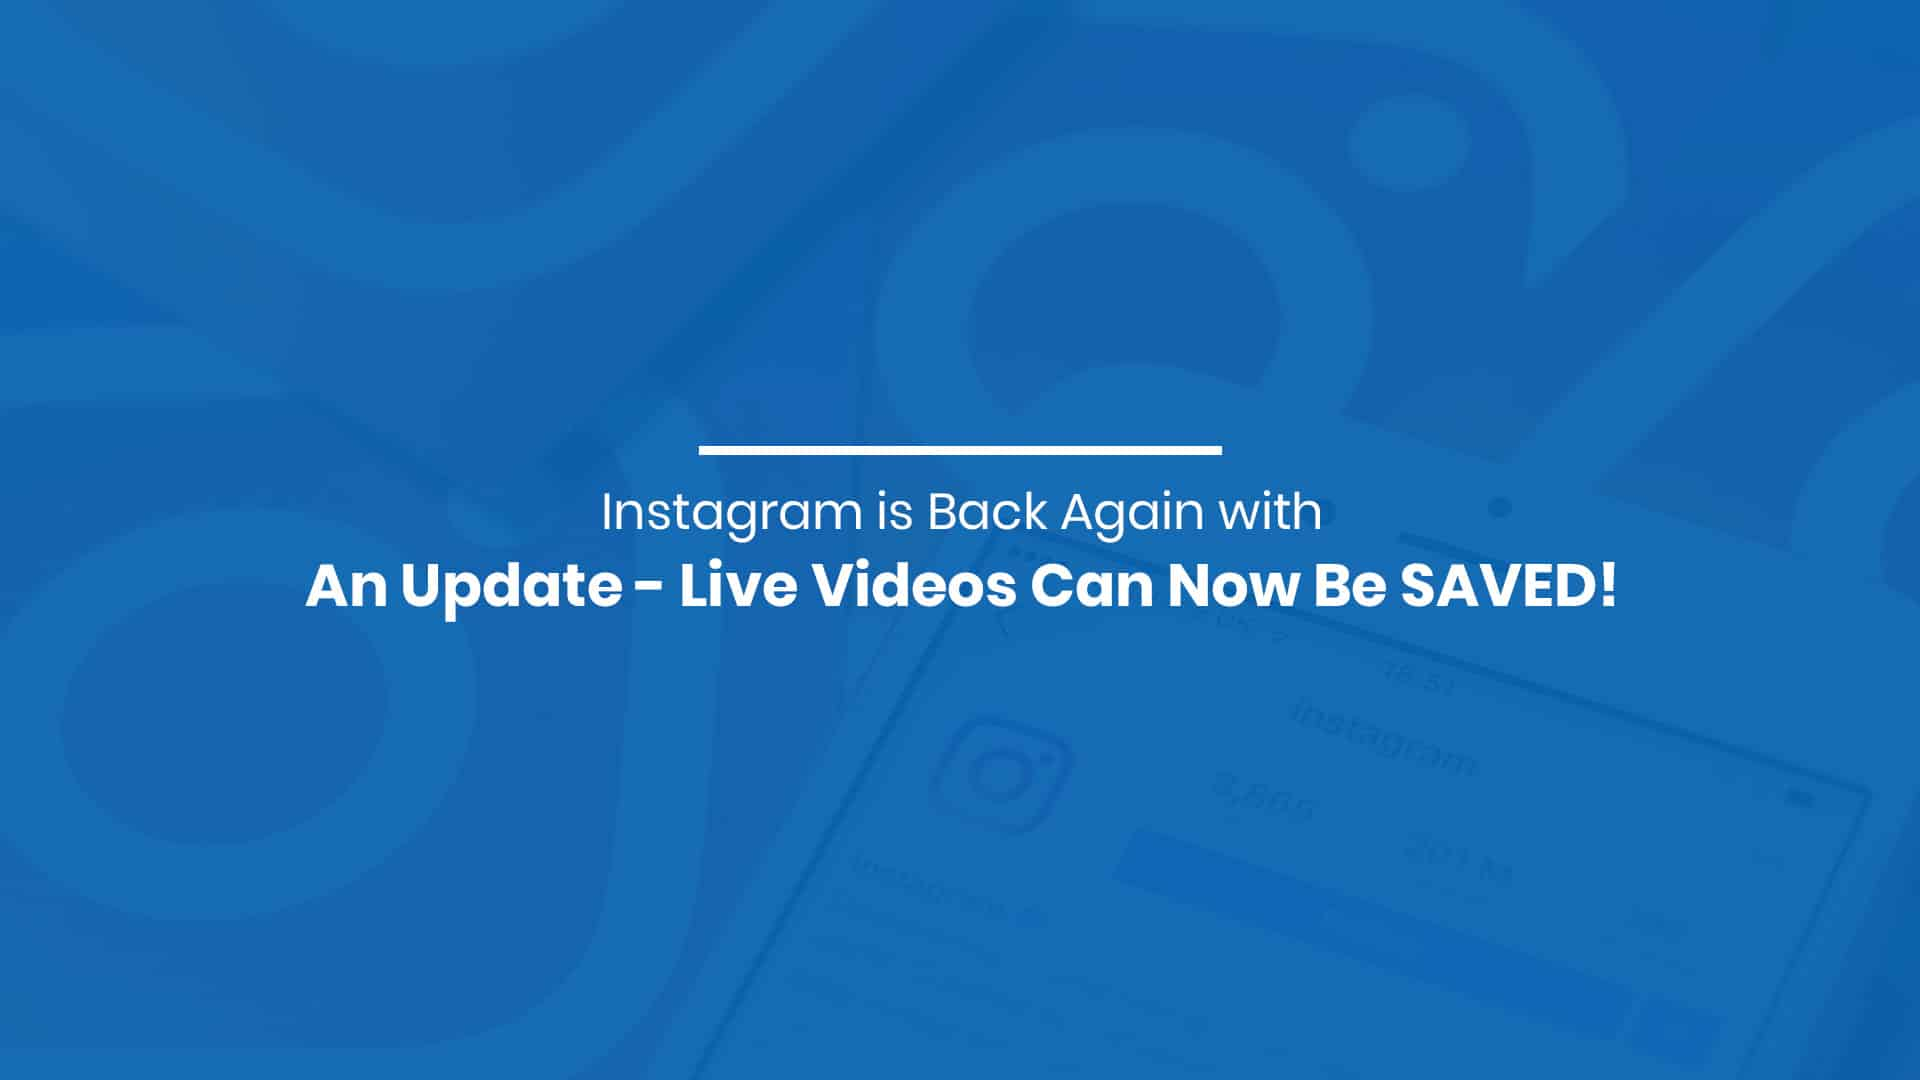 Instagram is Back Again with An Update